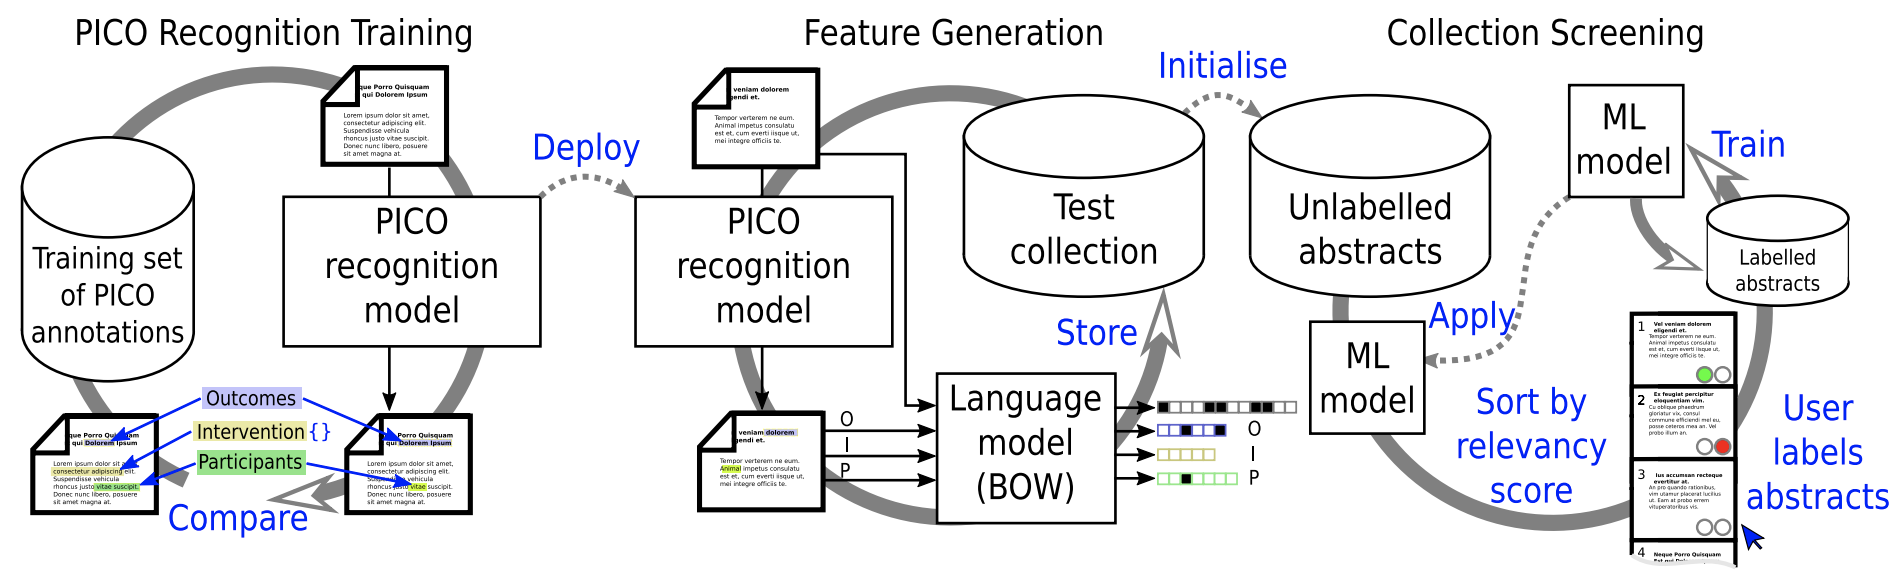 PICO recognition and abstract screening process. In the first phase, the PICO recognition model is trained to predict the PICO mention spans on a human annotated corpus of abstracts. In the second phase, a collection of abstracts is processed by the PICO recognition model and the results along with the original abstract are used to create a vector representation of each abstract. In the final phase, a user labels abstracts as being included (relevant) or excluded, these decisions are used to train a machine learning (ML) model that uses the vector representation. The ML model is applied to the remaining unlabelled abstracts, which are then sorted by their predicted relevancy, the user sees the top ranked abstracts, labels them, and this process repeats